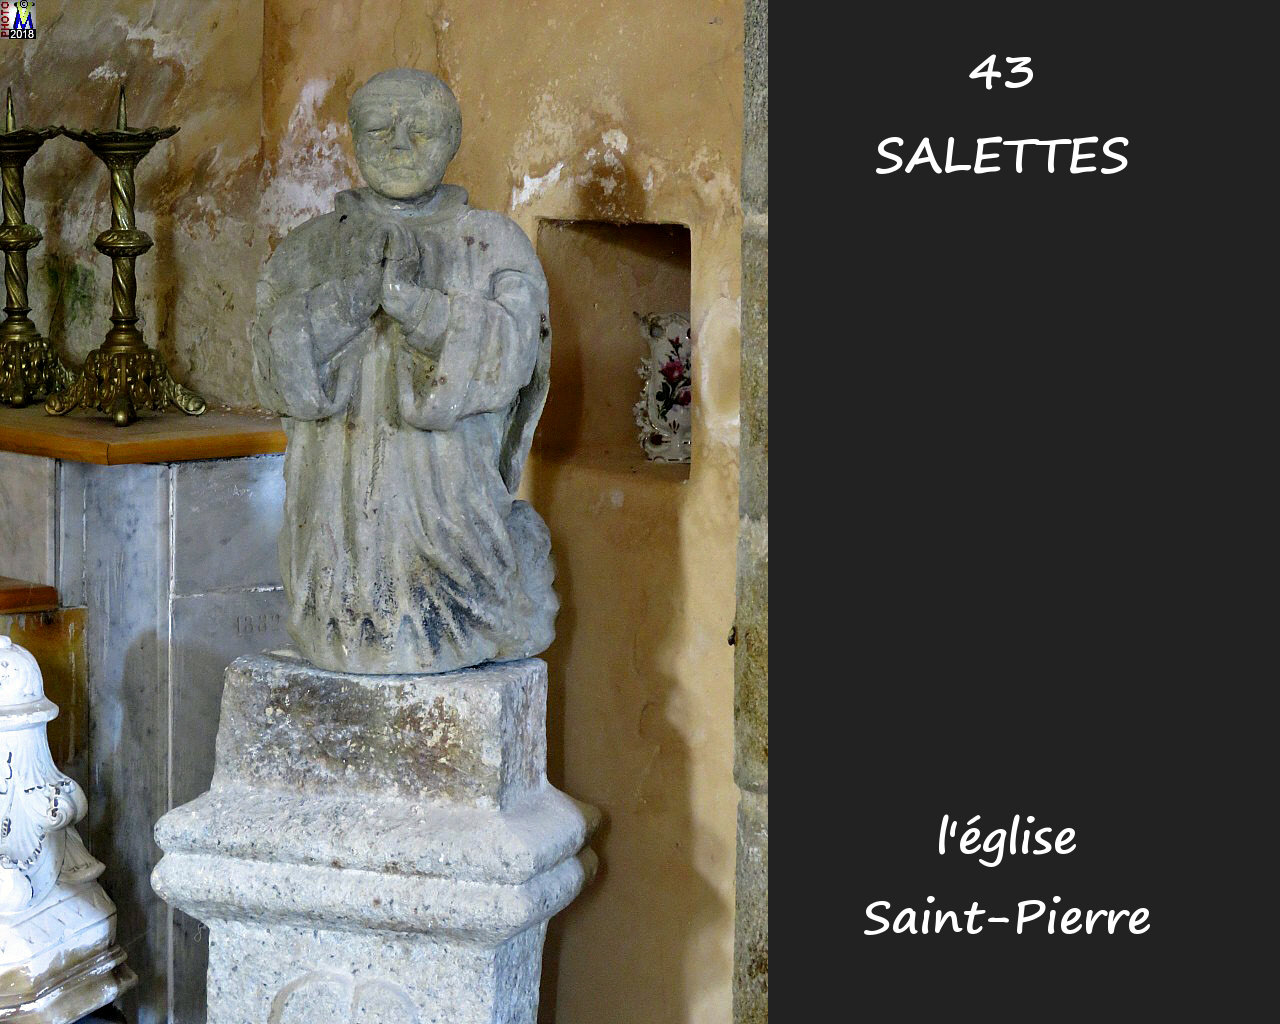 43SALETTES_eglise_250.jpg